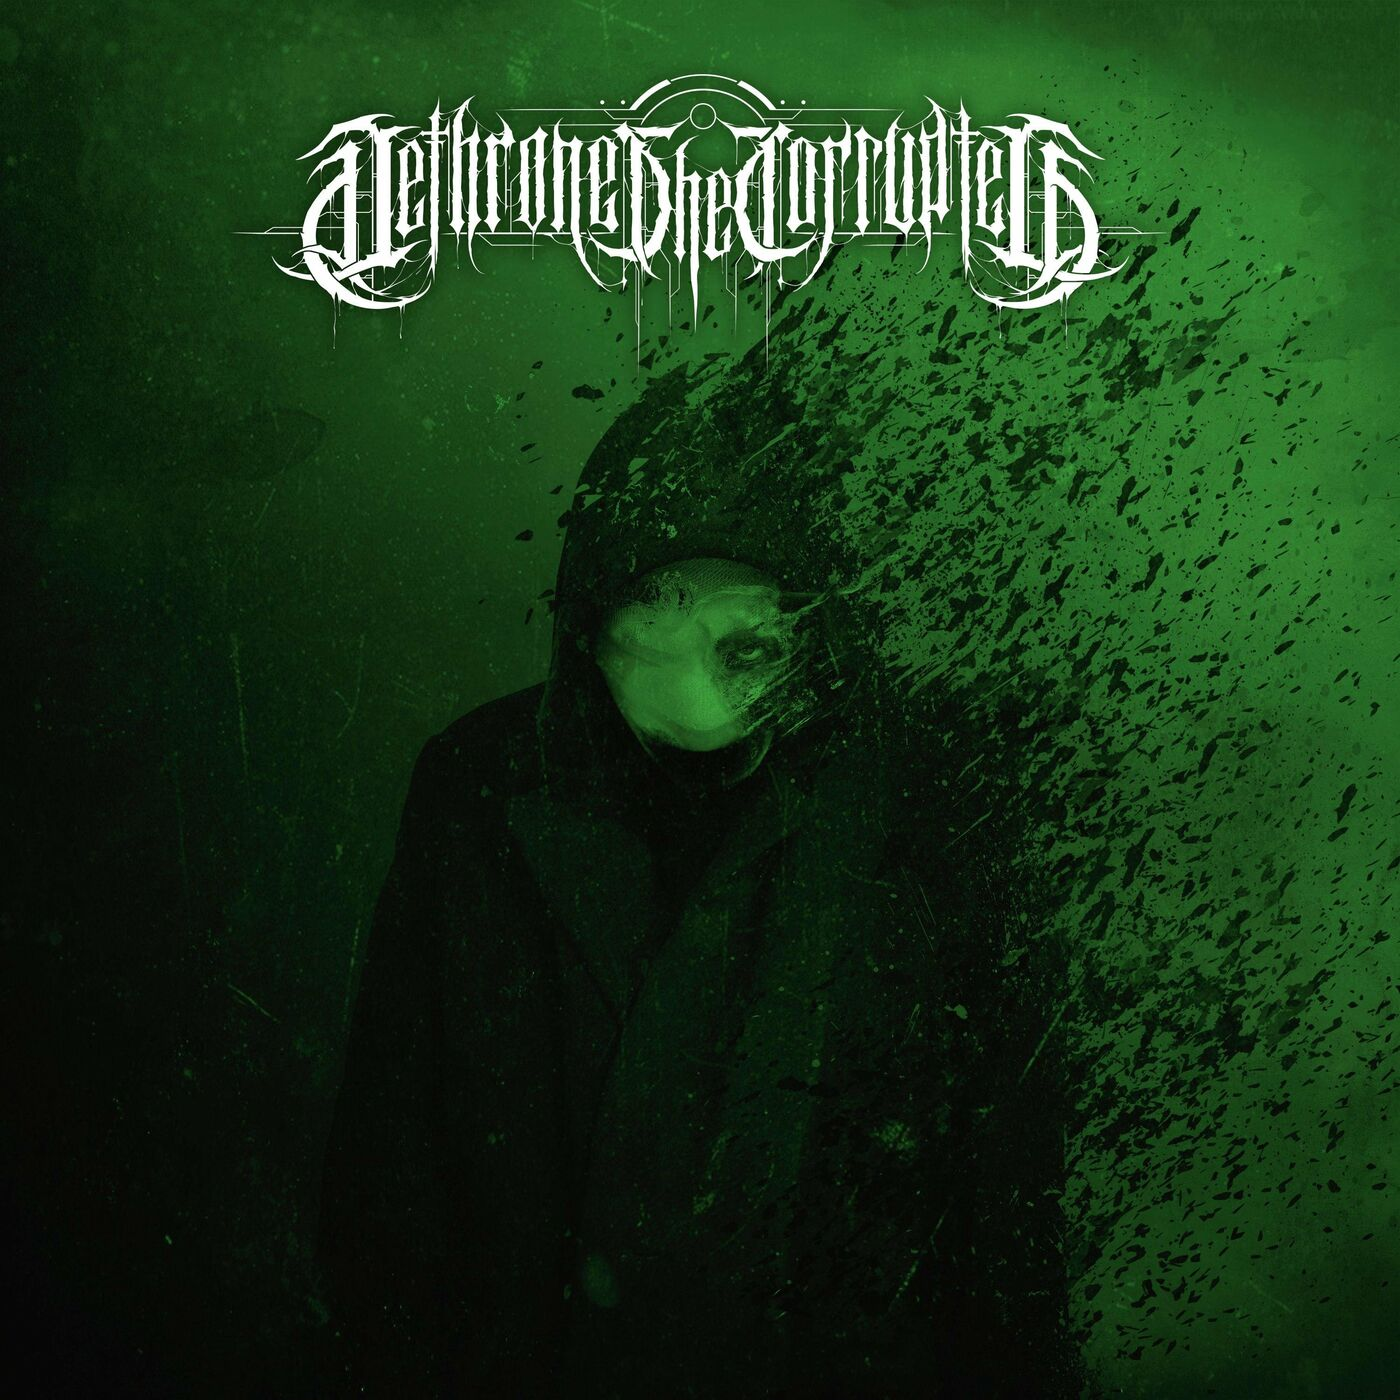 Dethrone The Corrupted - Of Man & The Amygdaloid Reaper [single] (2020)